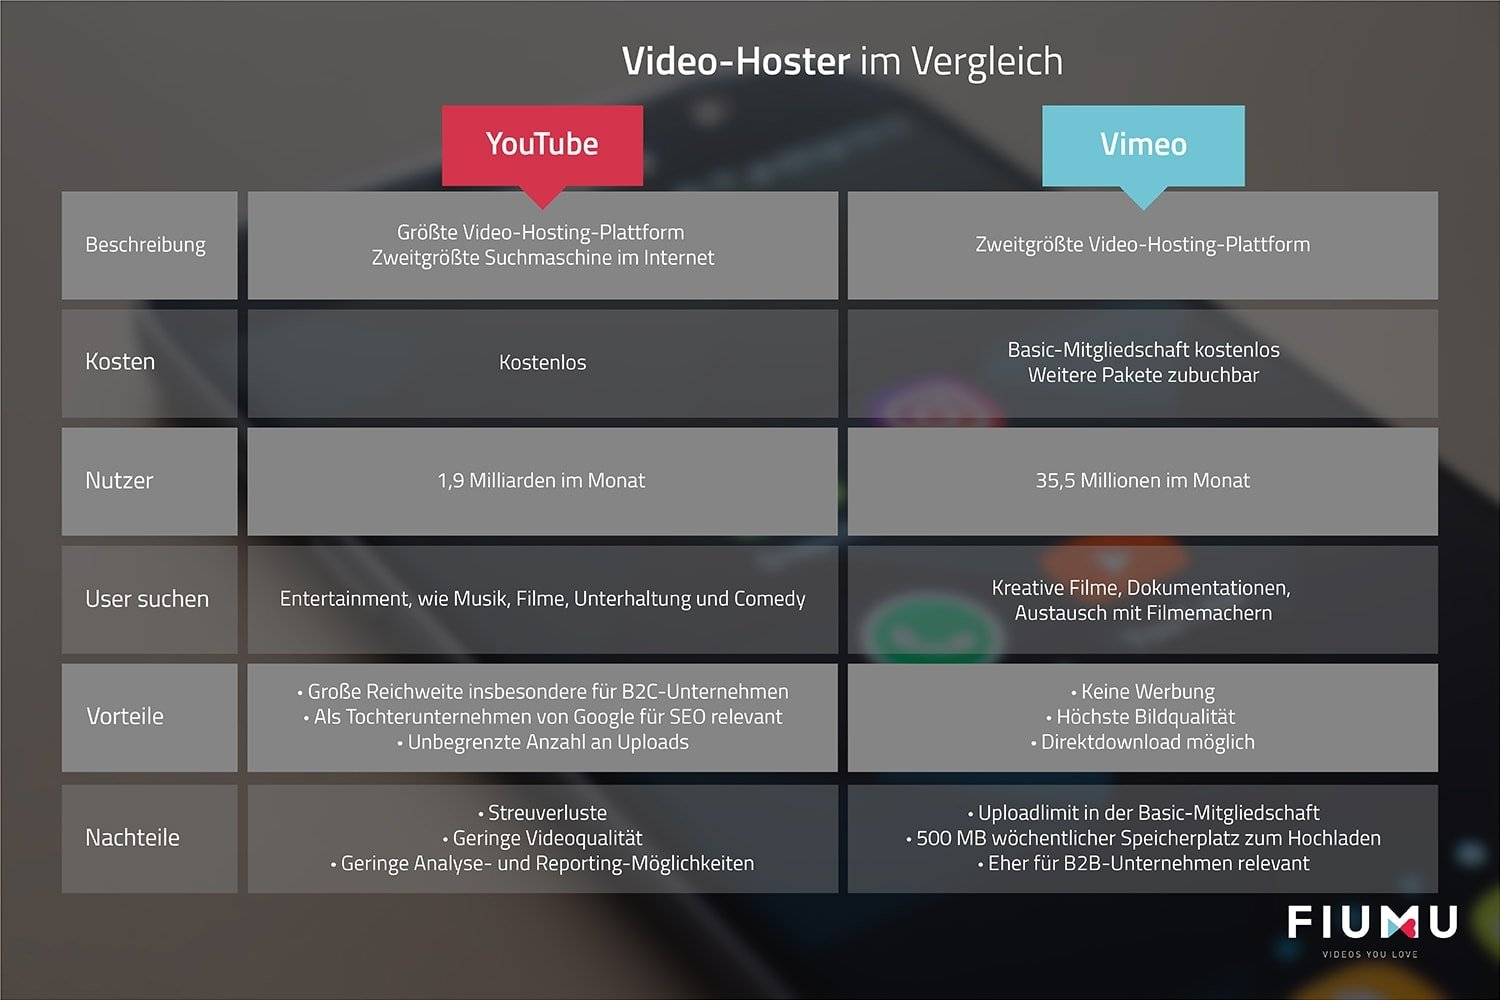 Vergleich Video-Hoster YouTube vs. Vimeo